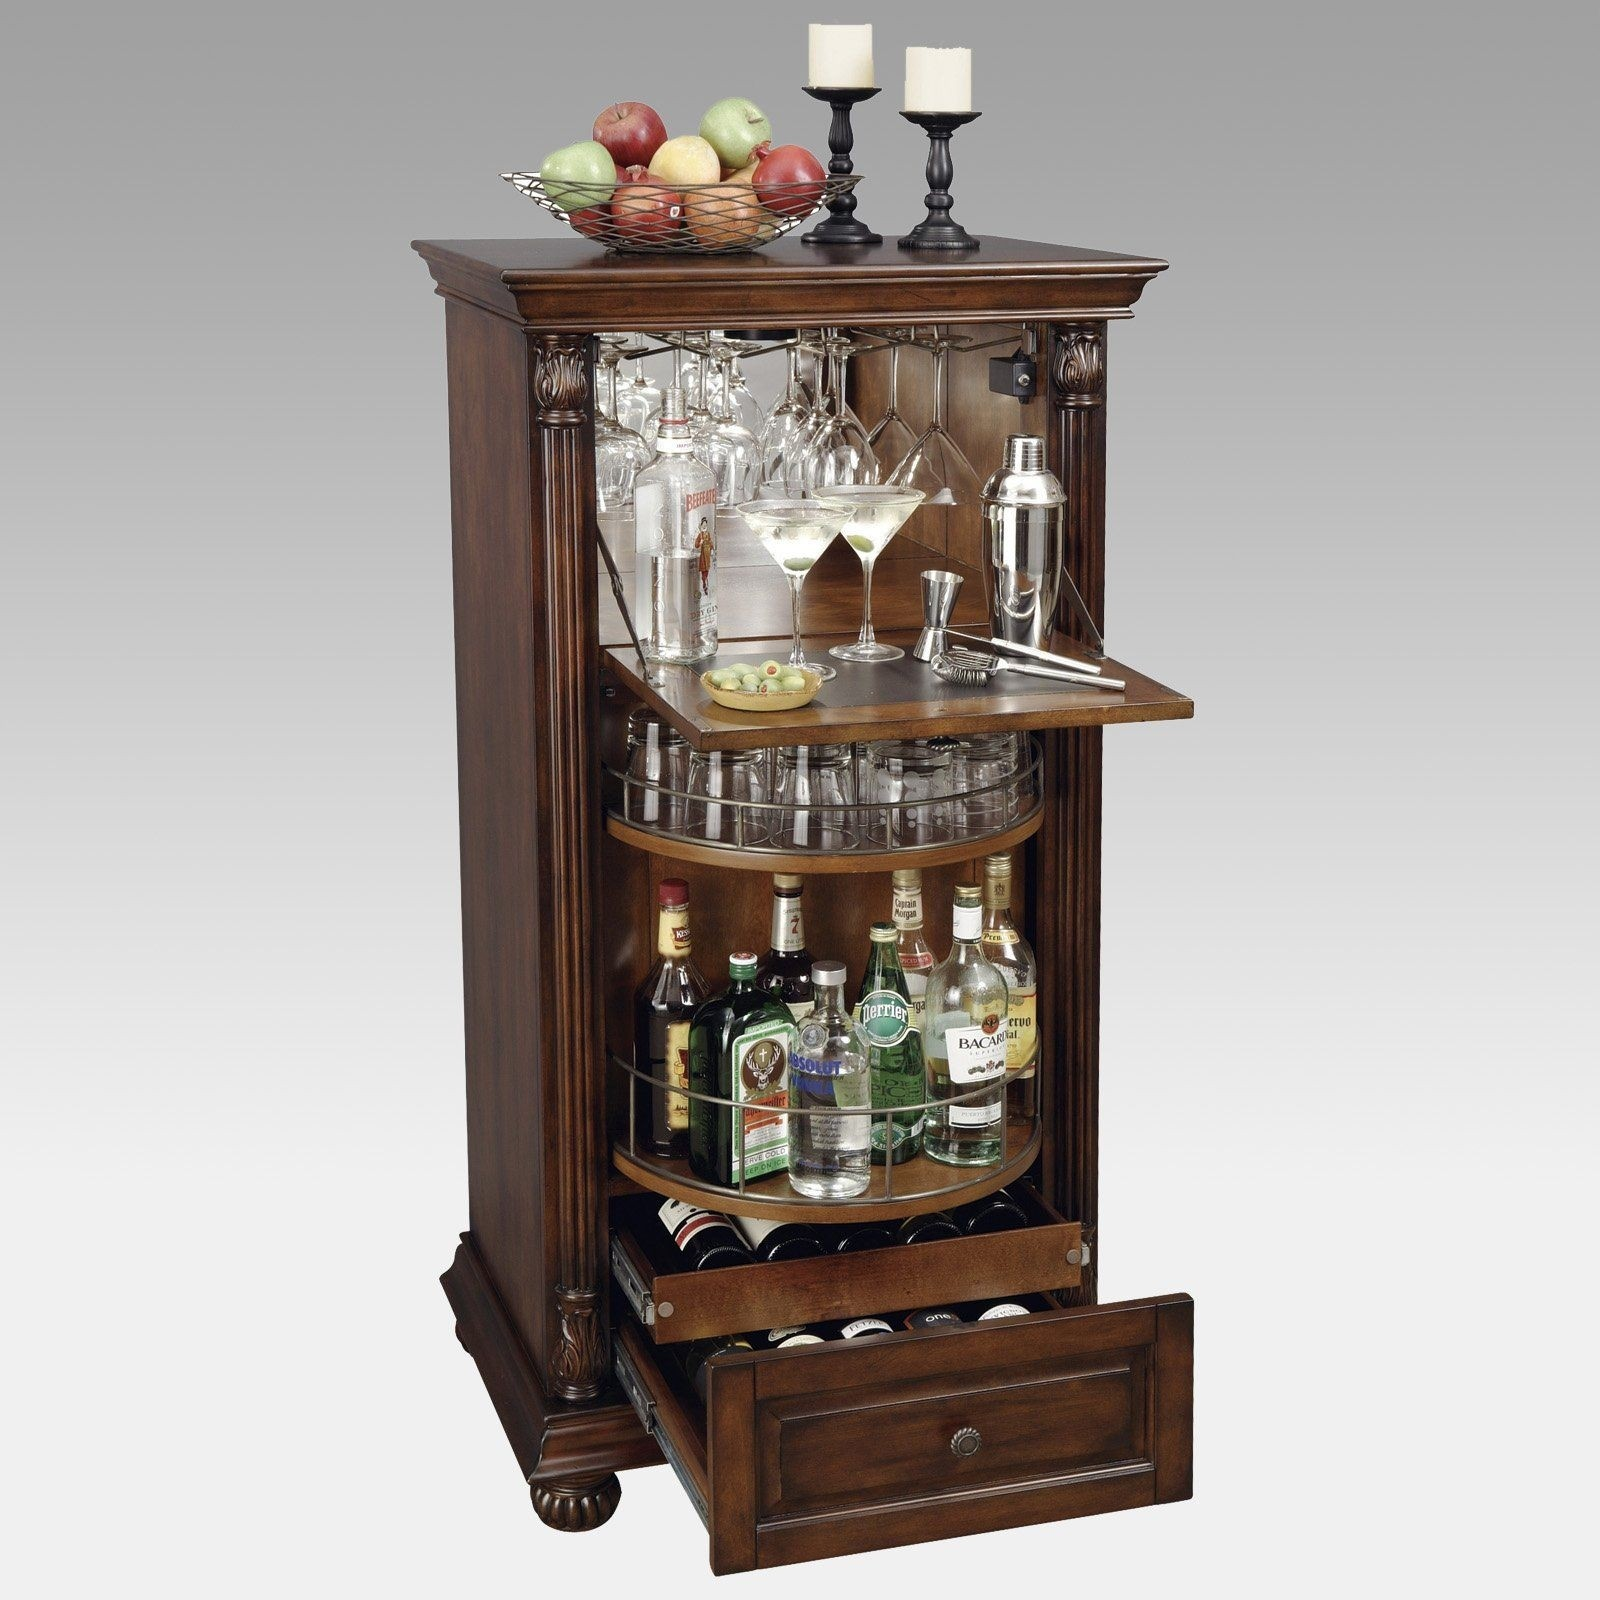 small bar cabinets for home ideas on foter rh foter com bar cabinets for home ikea small bar cabinets for home